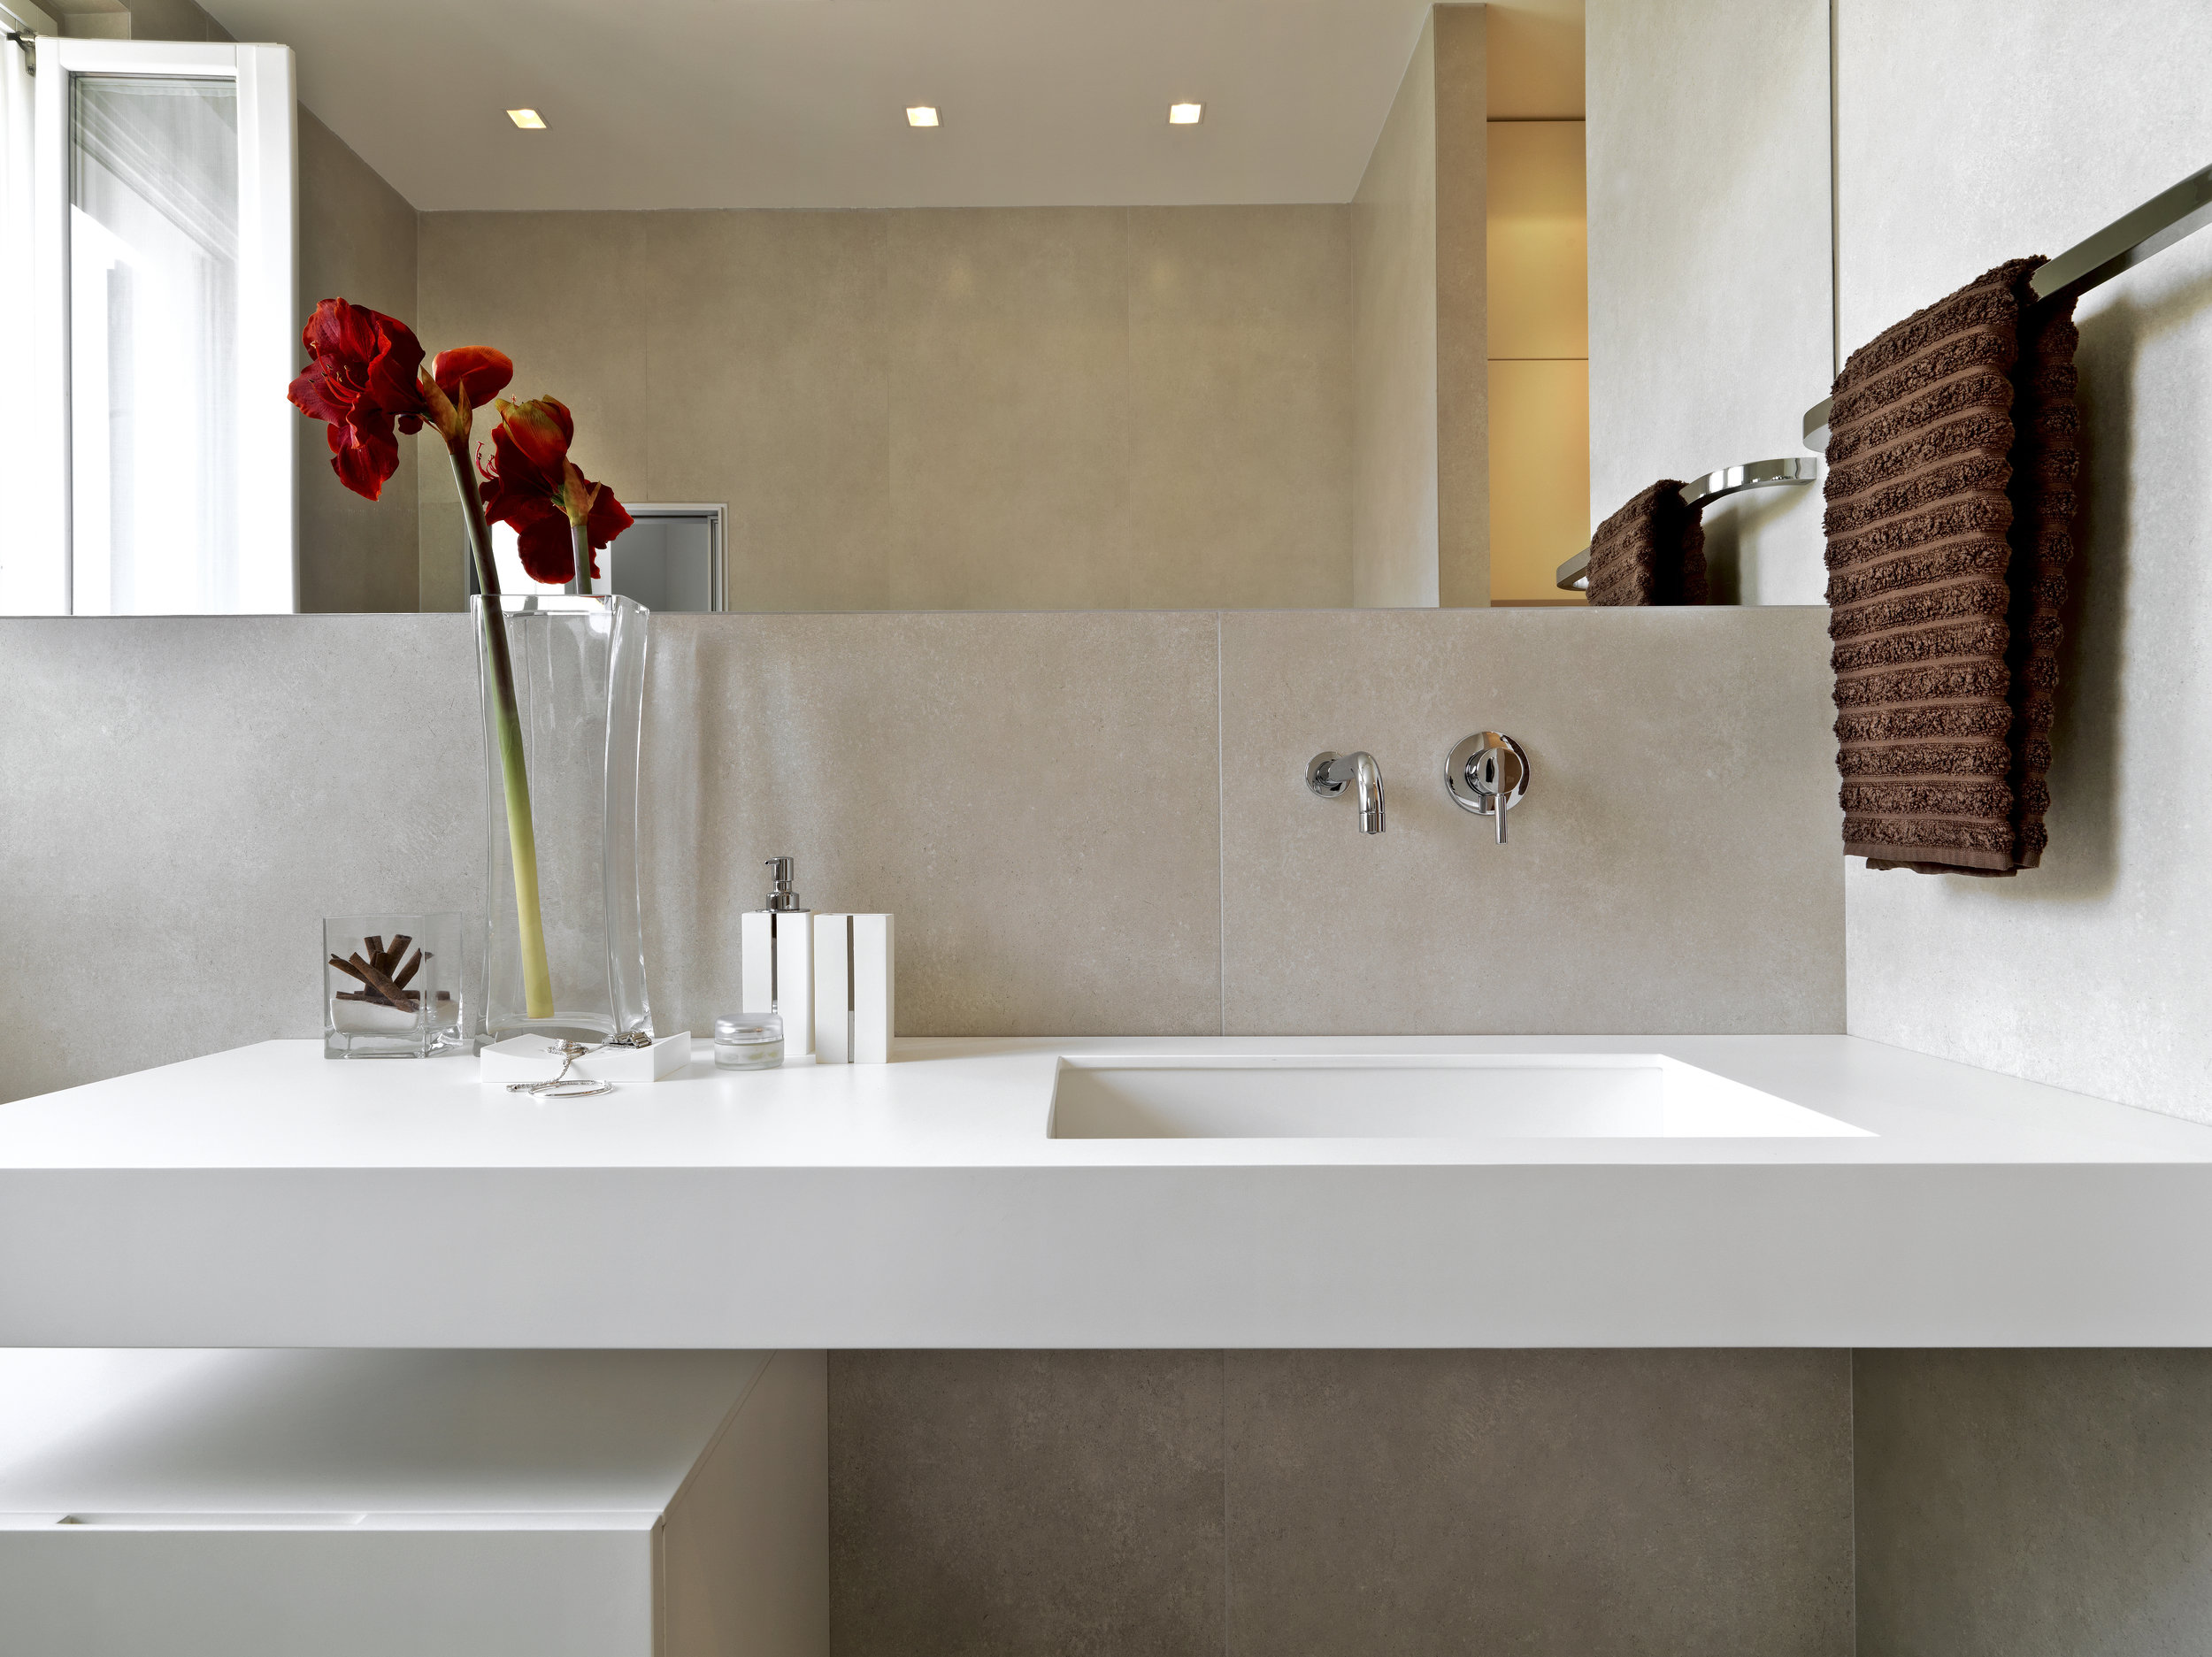 Cast Sinks and Bowls - Our Cast Sinks and Bowls are available in various models. They are not only premium quality but are bacterial resistant, easy to clean and maintain. They can be under-mounted which gives you a perfectly integrated bathroom design.